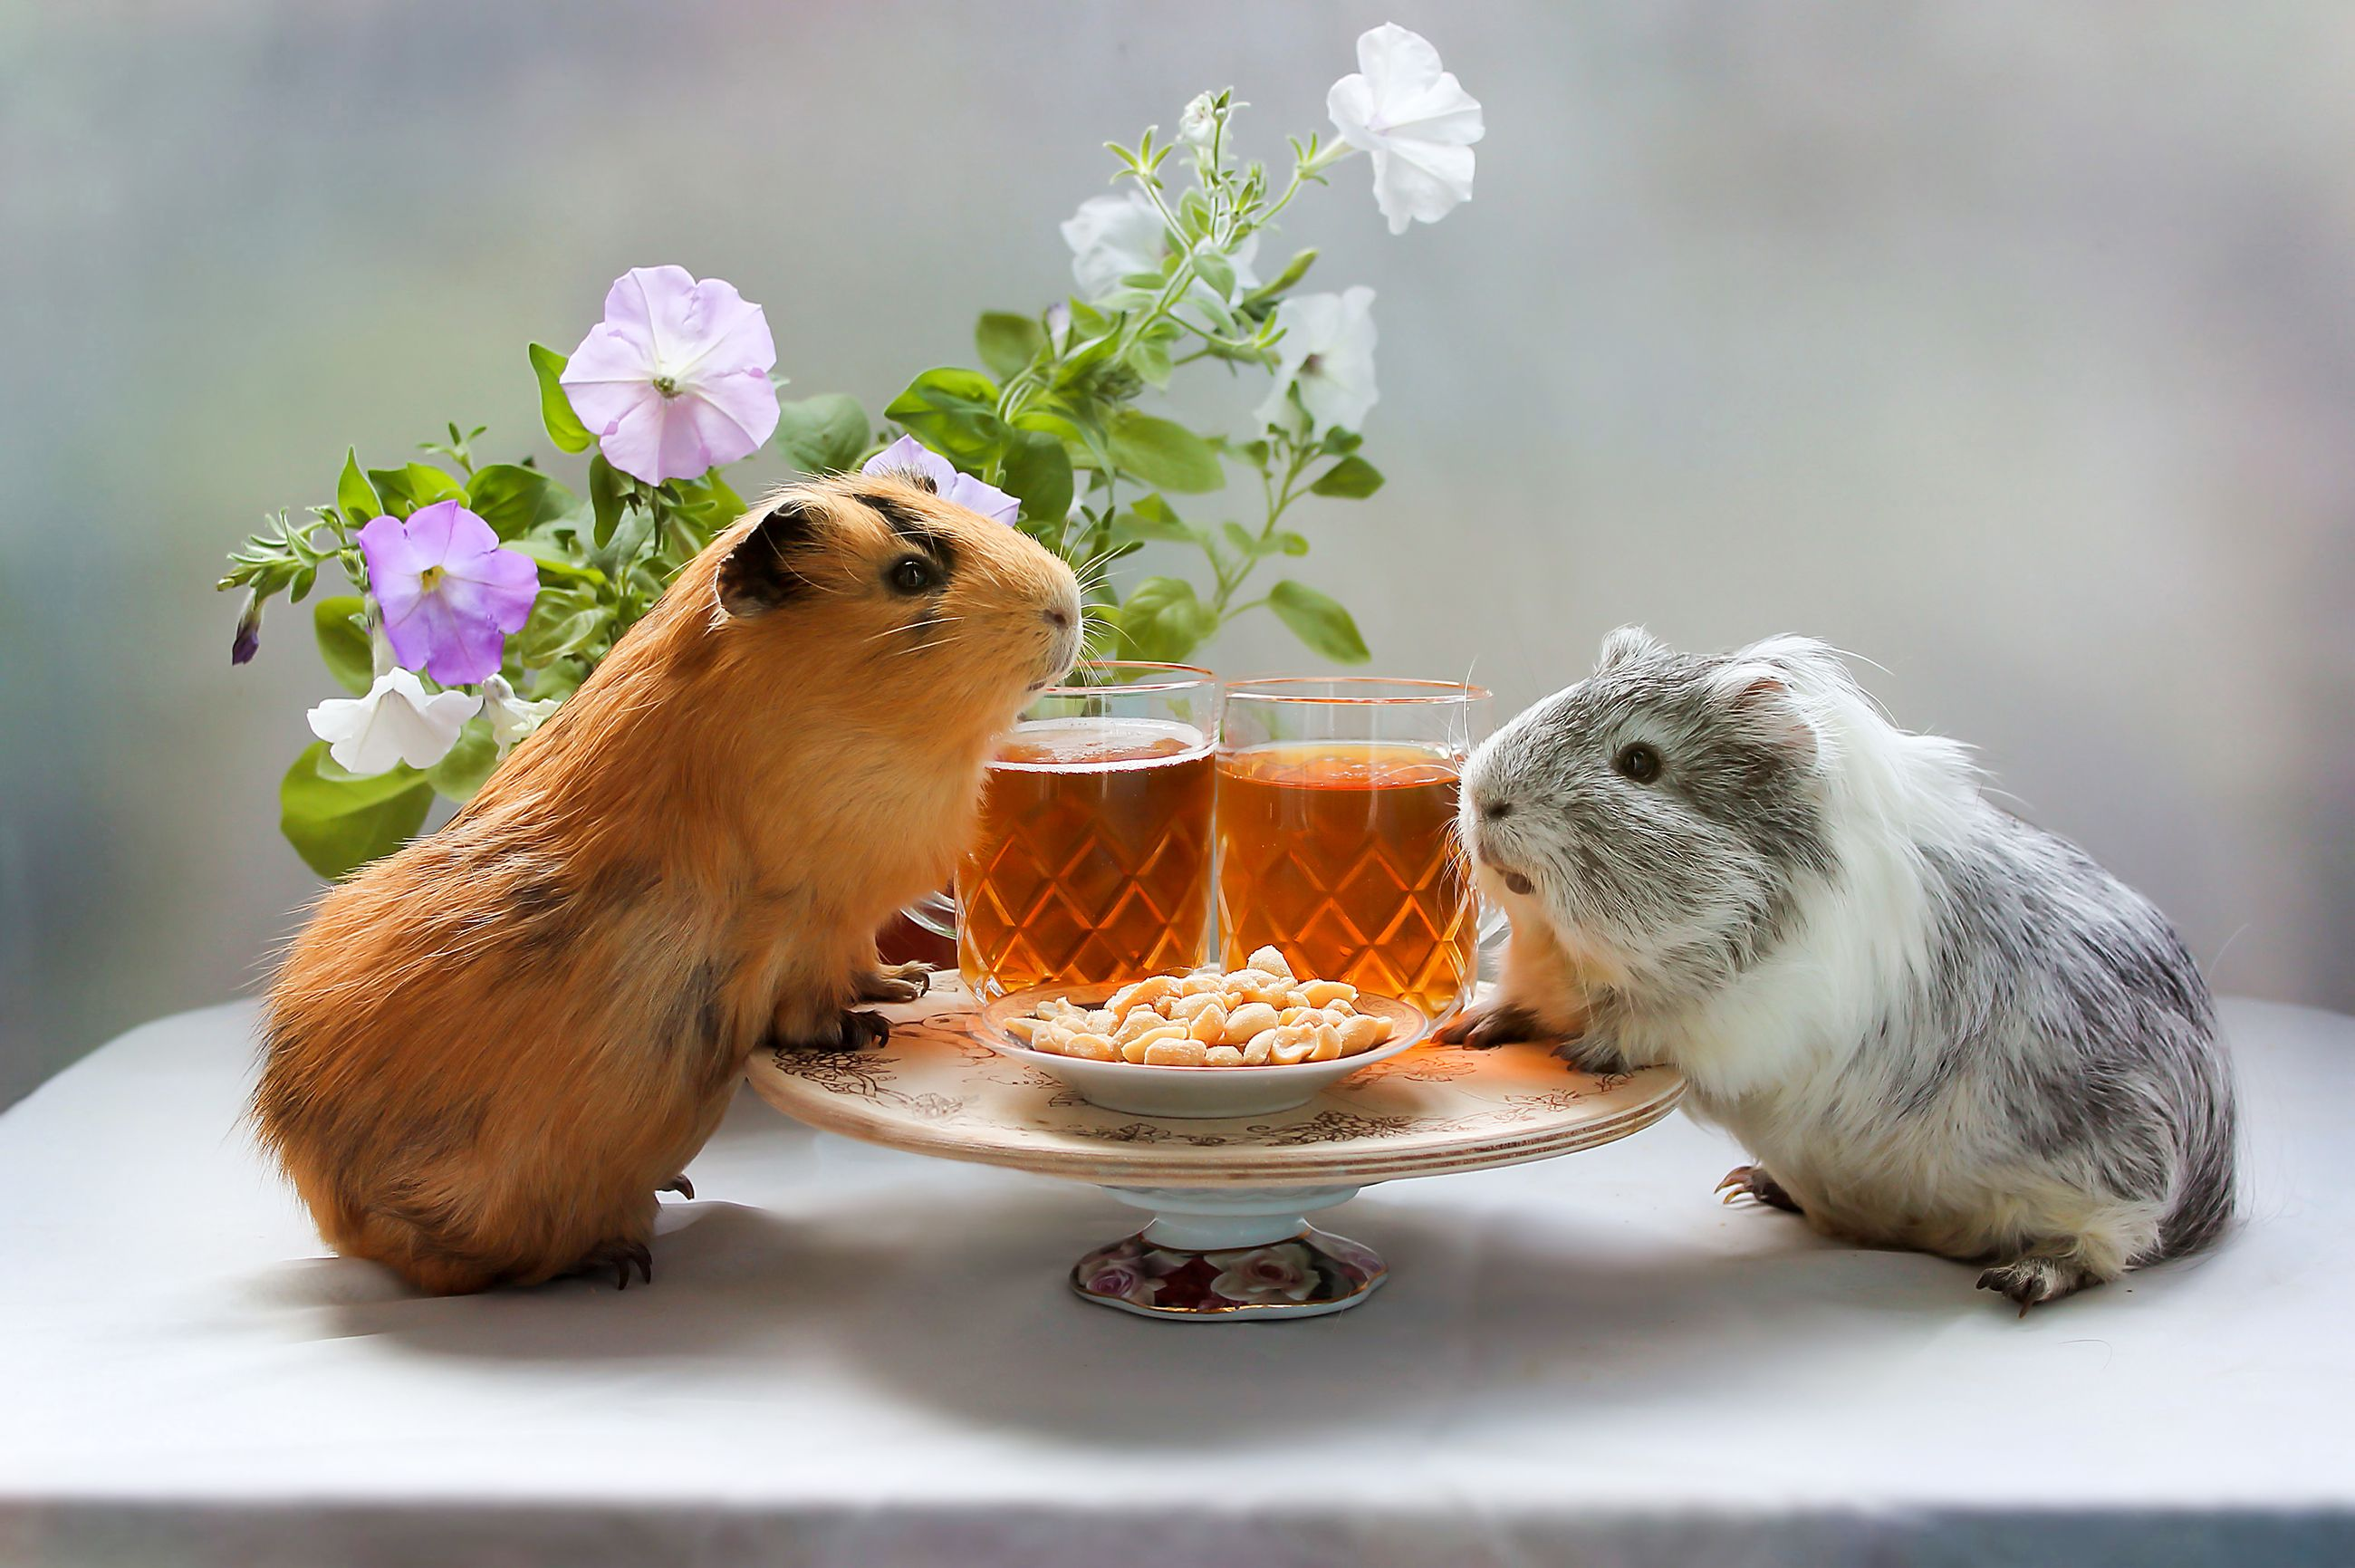 What Do What Do Guinea Pigs Eat? Here are 4 Must-Get Foods